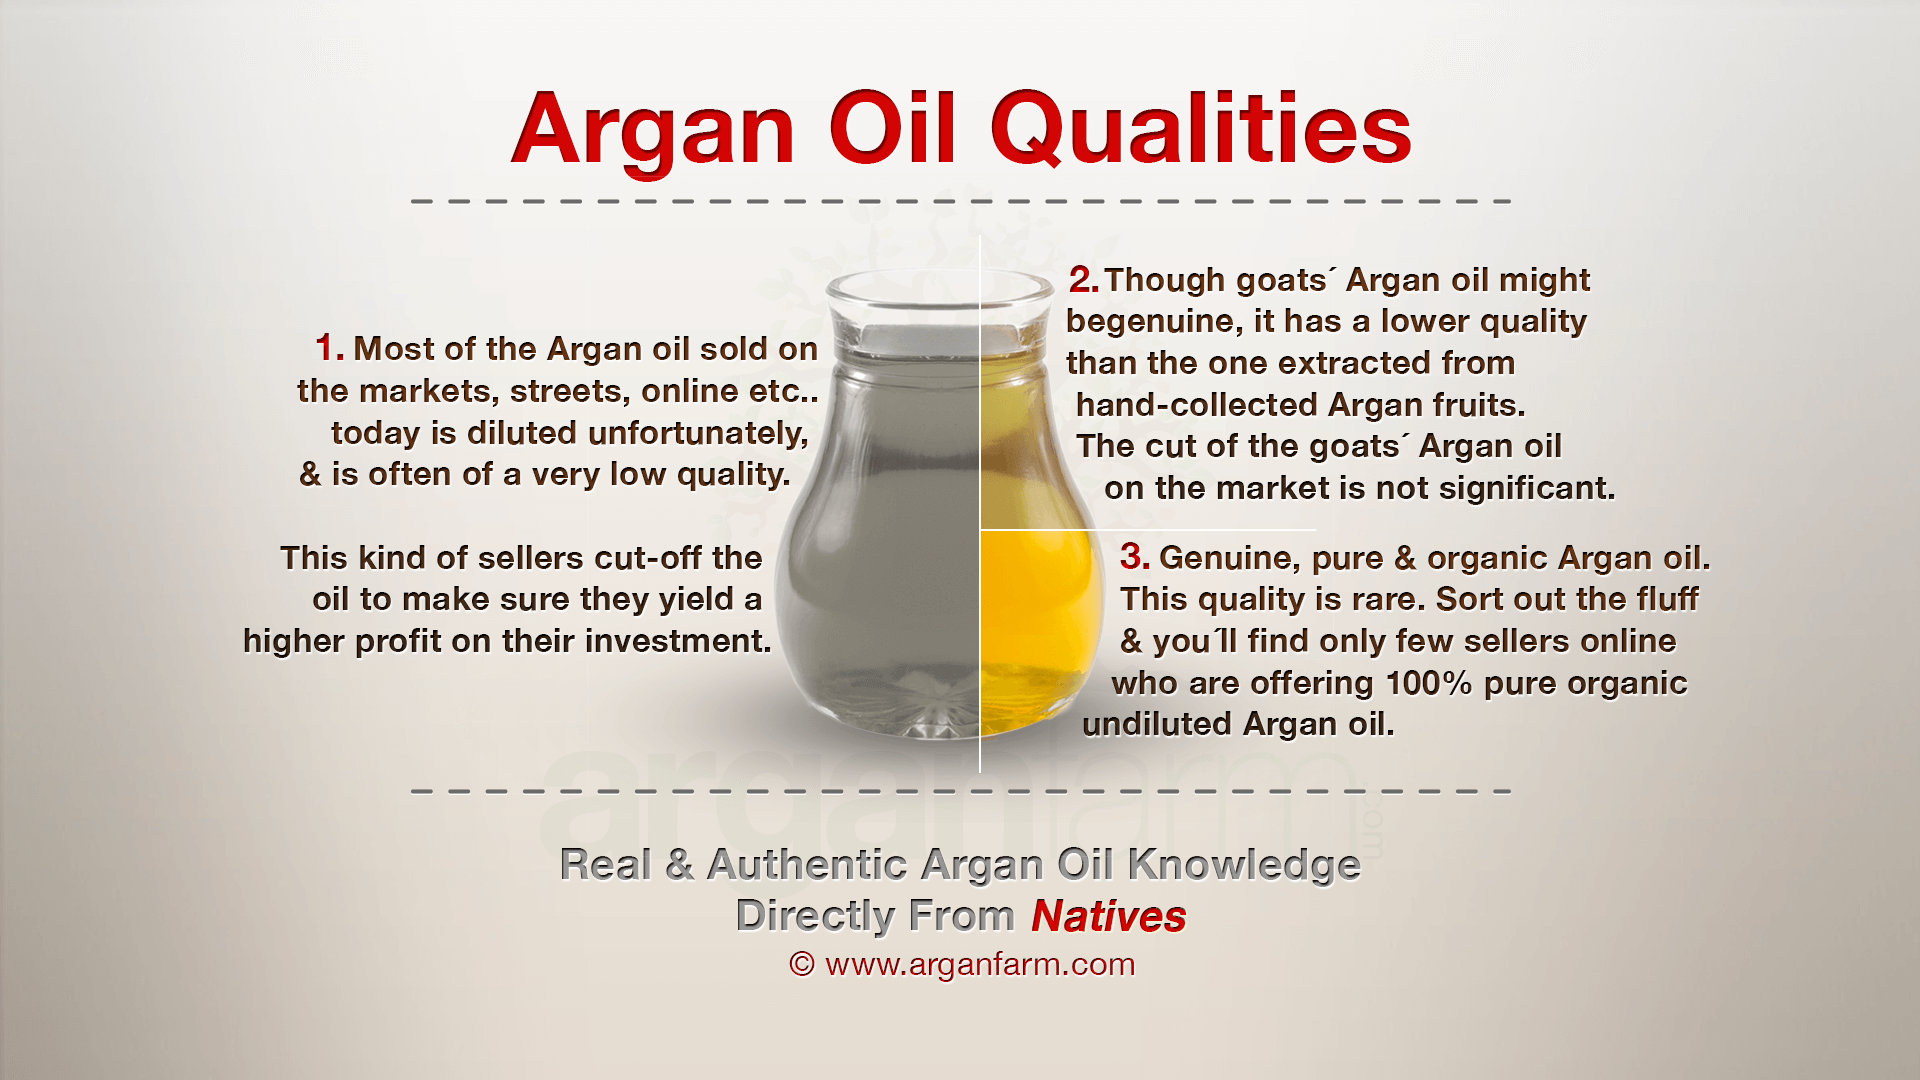 The Different Qualities Of Argan Oil